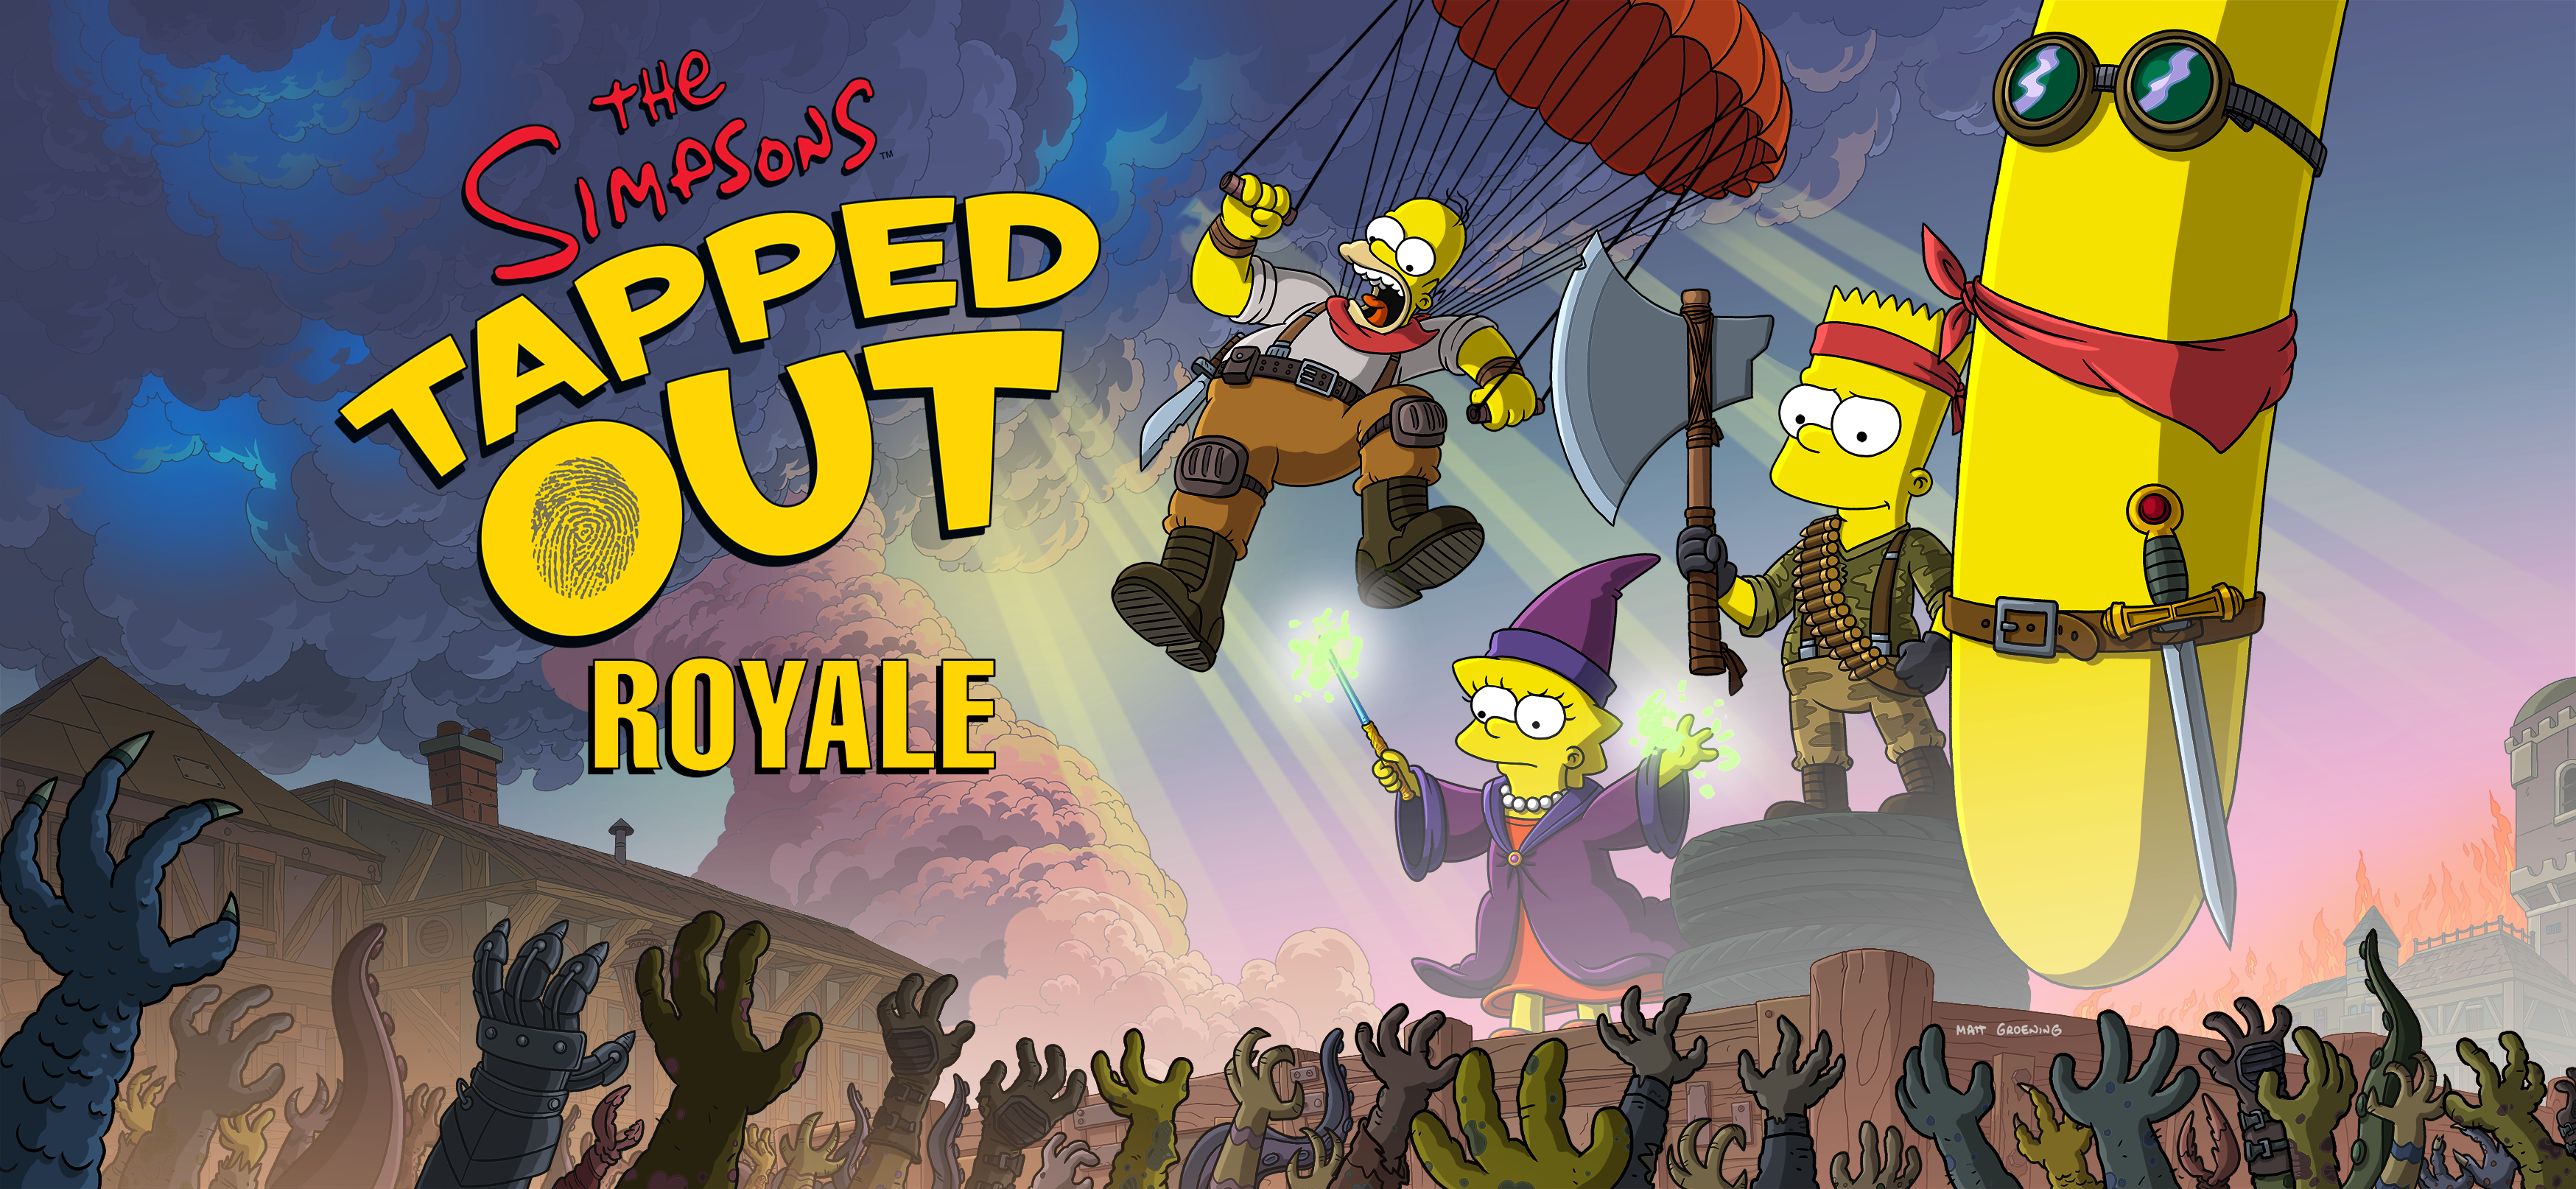 The Simpsons Tapped Out Christmas 2019 Game of Games 2019 Event | The Simpsons: Tapped Out Wiki | FANDOM